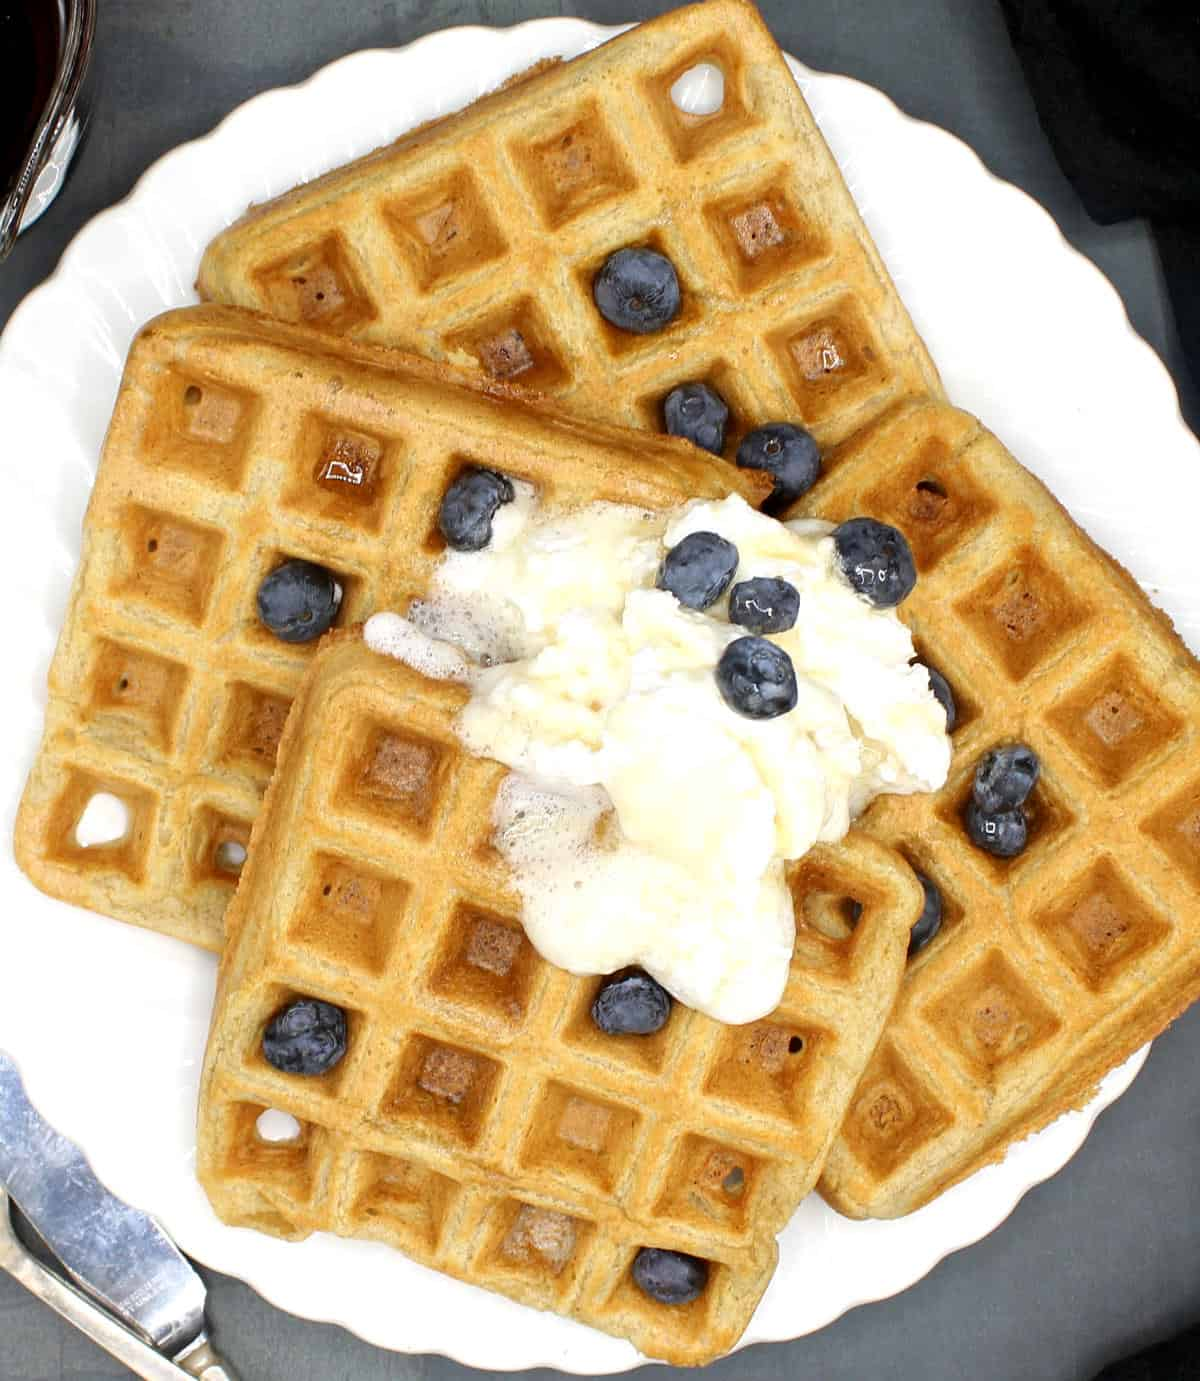 Photo of perfect vegan waffles on a plate with vegan whipped cream and blueberries.